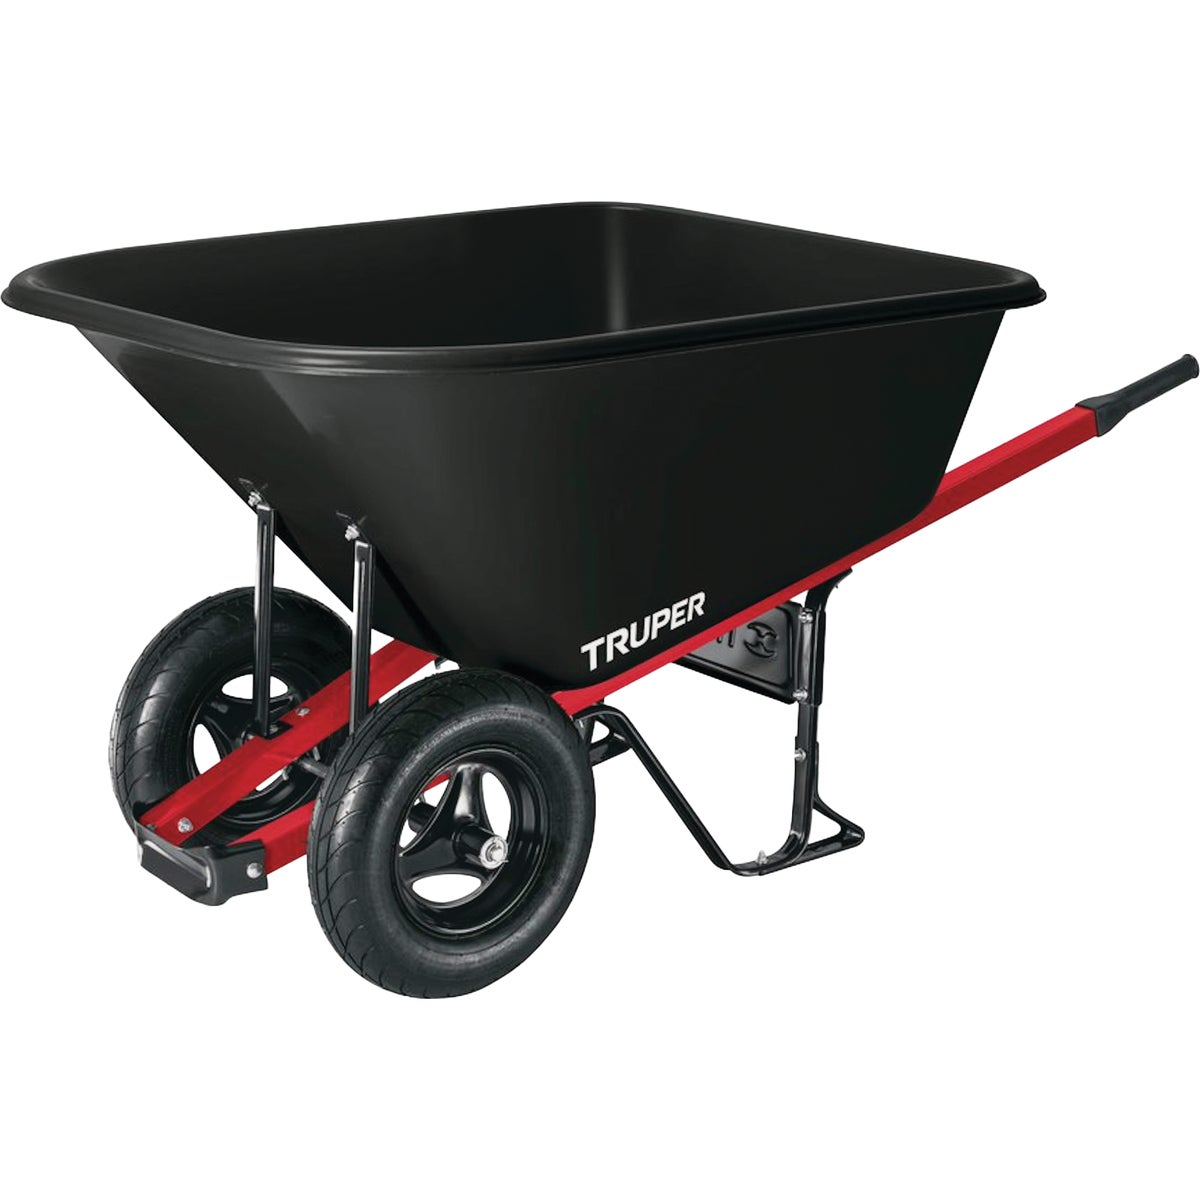 10CU FT WHEELBARROW - PP10 by Truper Herramientas